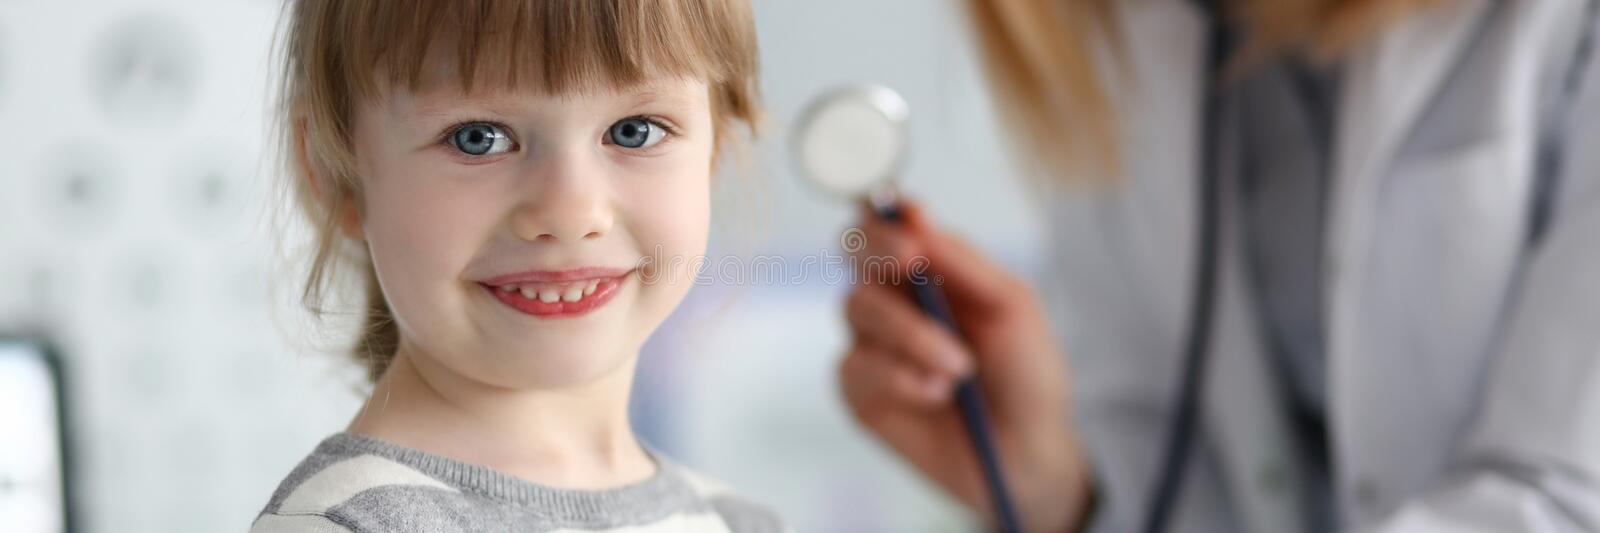 Smiling cute little patient interacting with female doctor stock photo